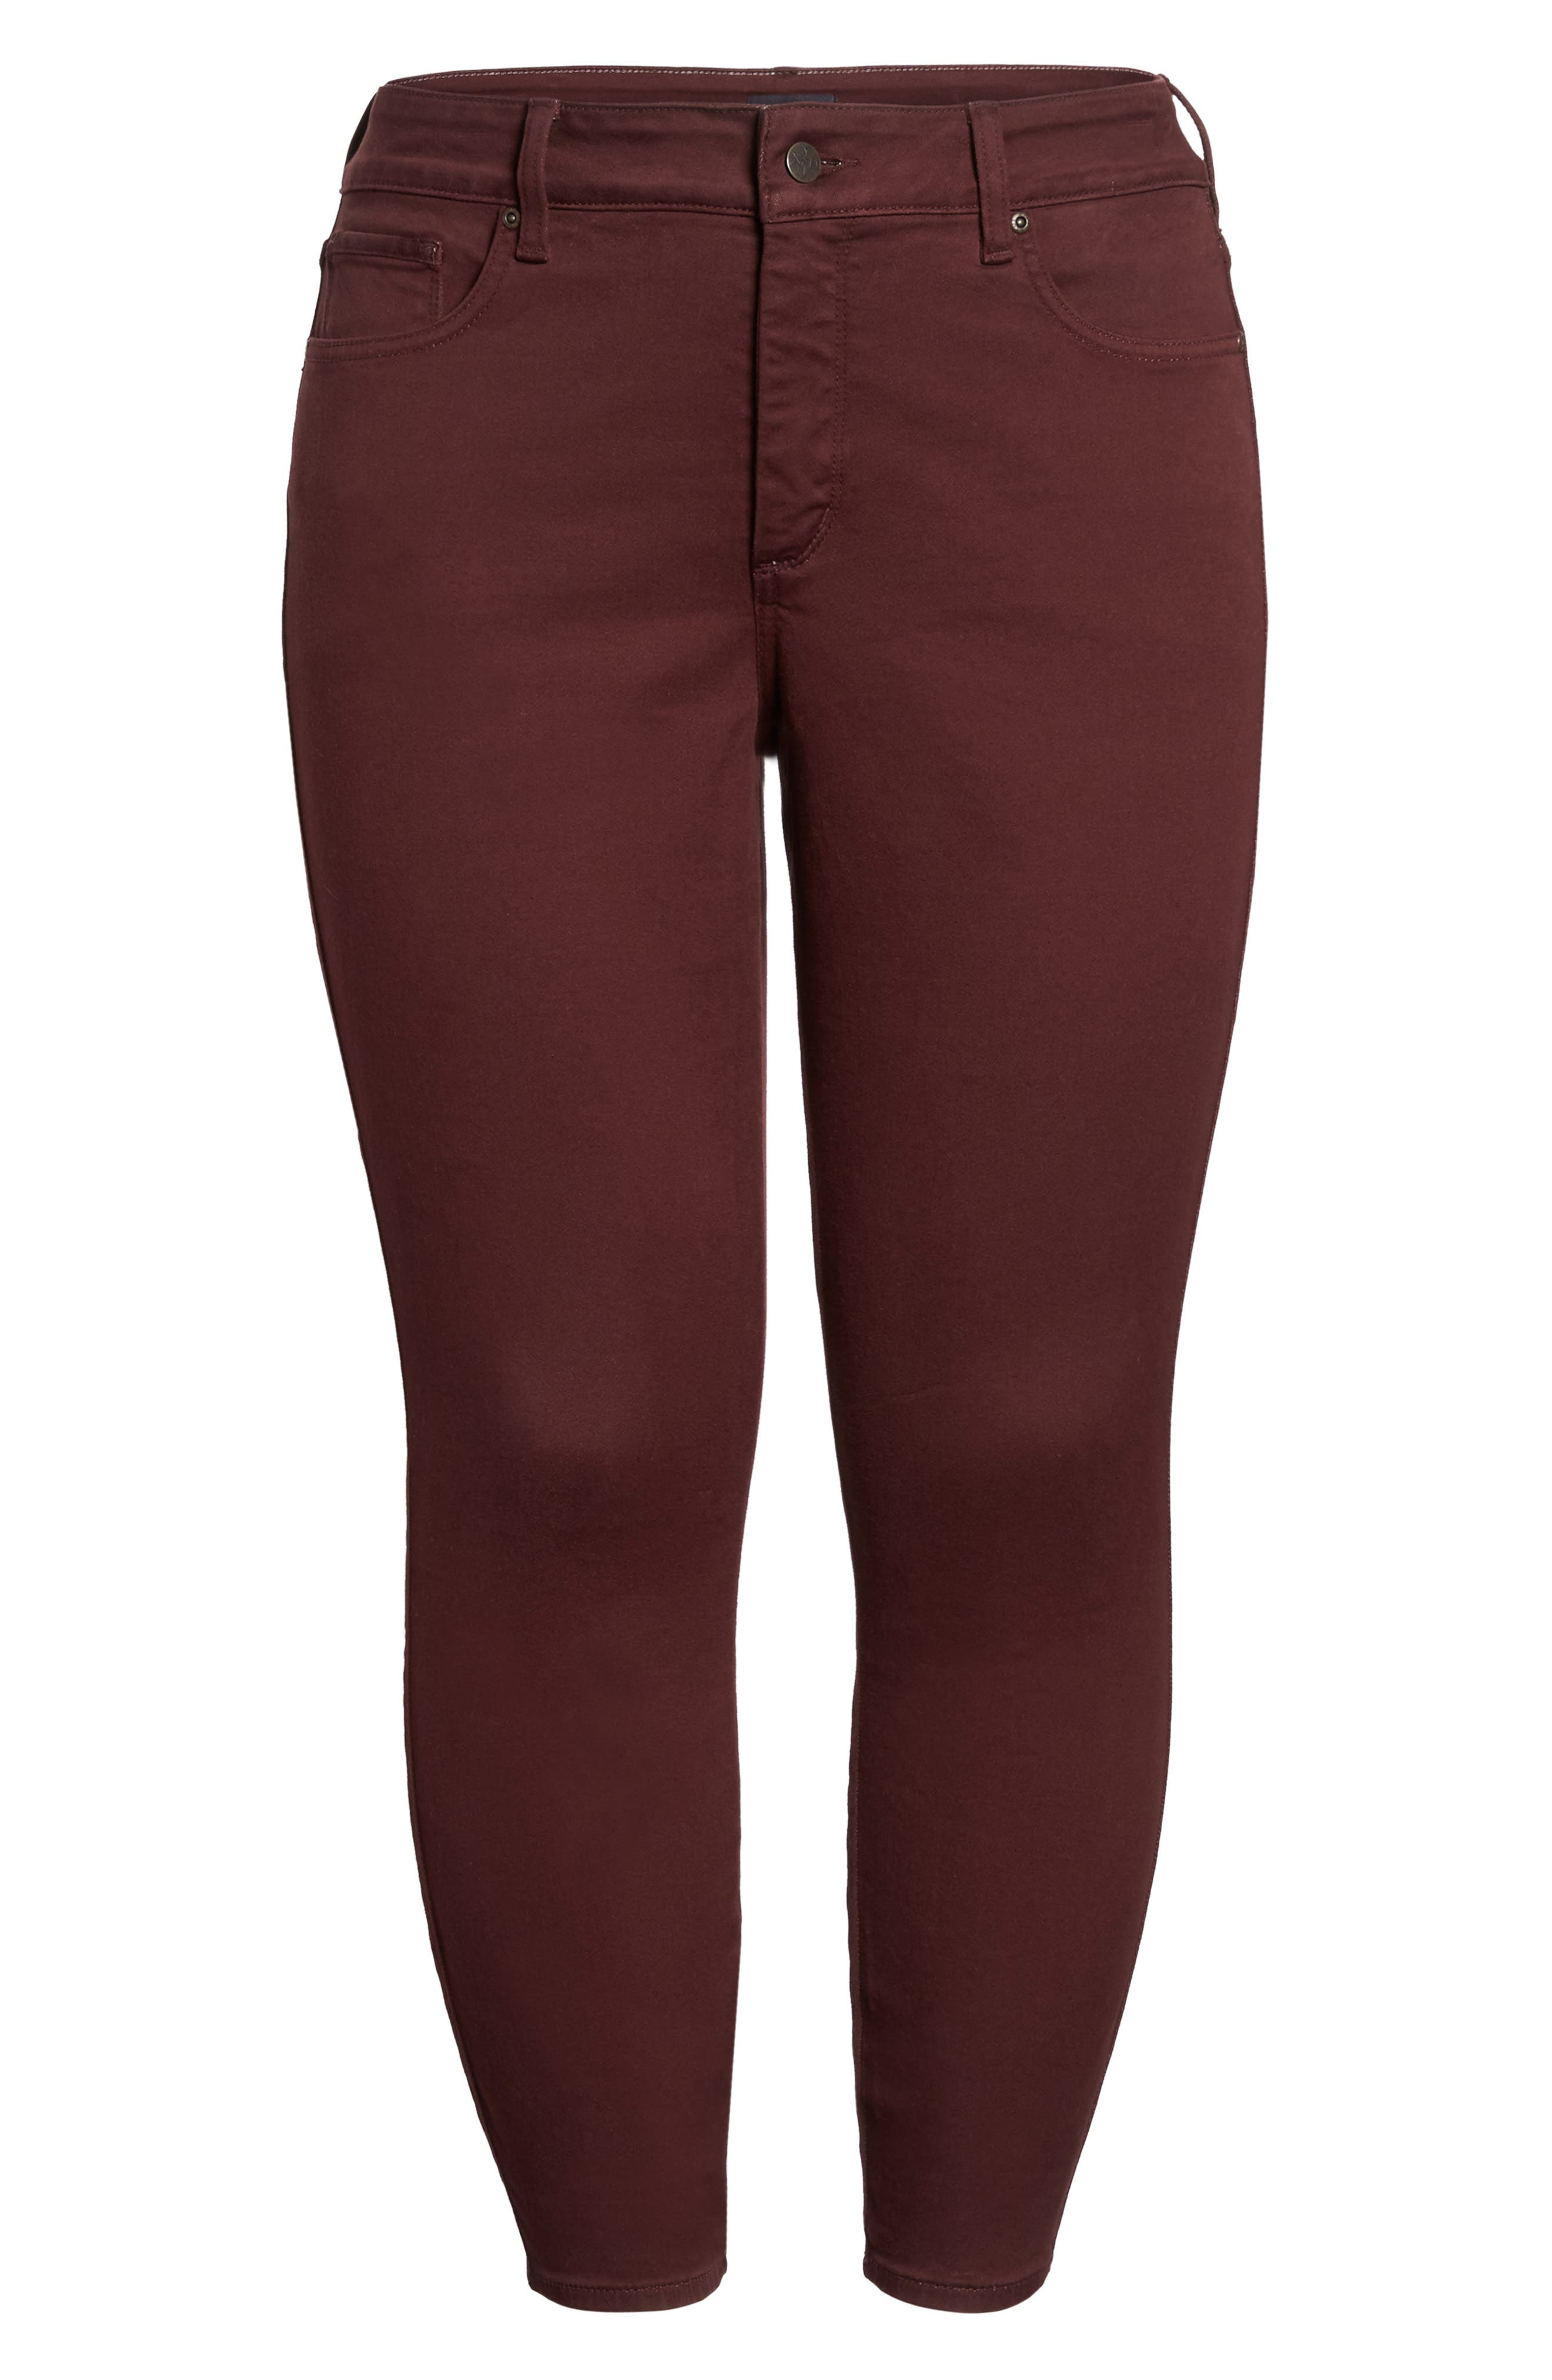 Ami Stretch Skinny Jeans,                             Alternate thumbnail 6, color,                             Deep Currant